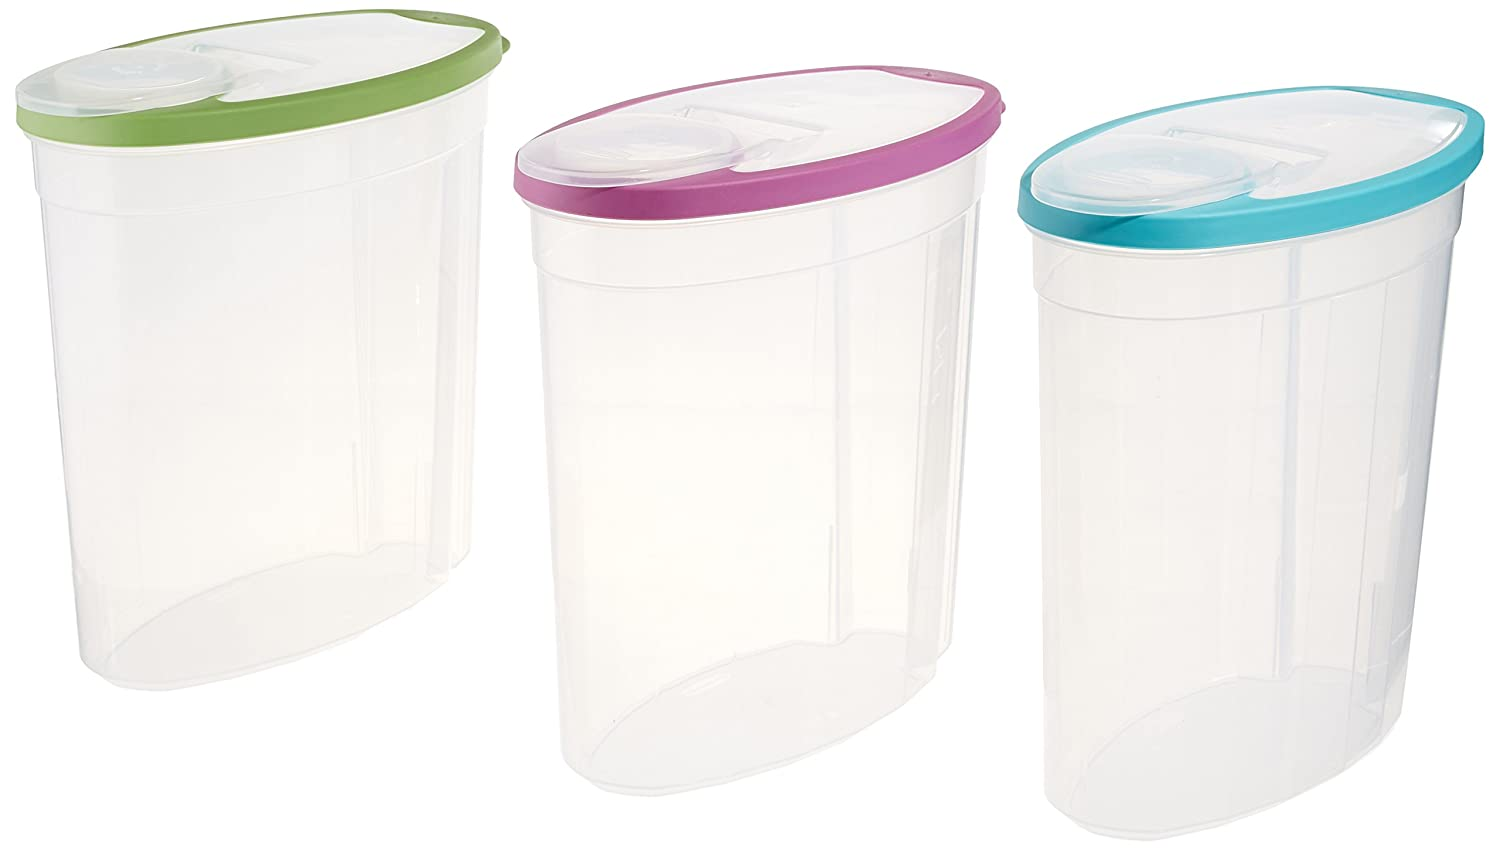 Rubbermaid1.5 gallon Cereal/Snack Storage Container (3 Pack), Blue/Green/Purple